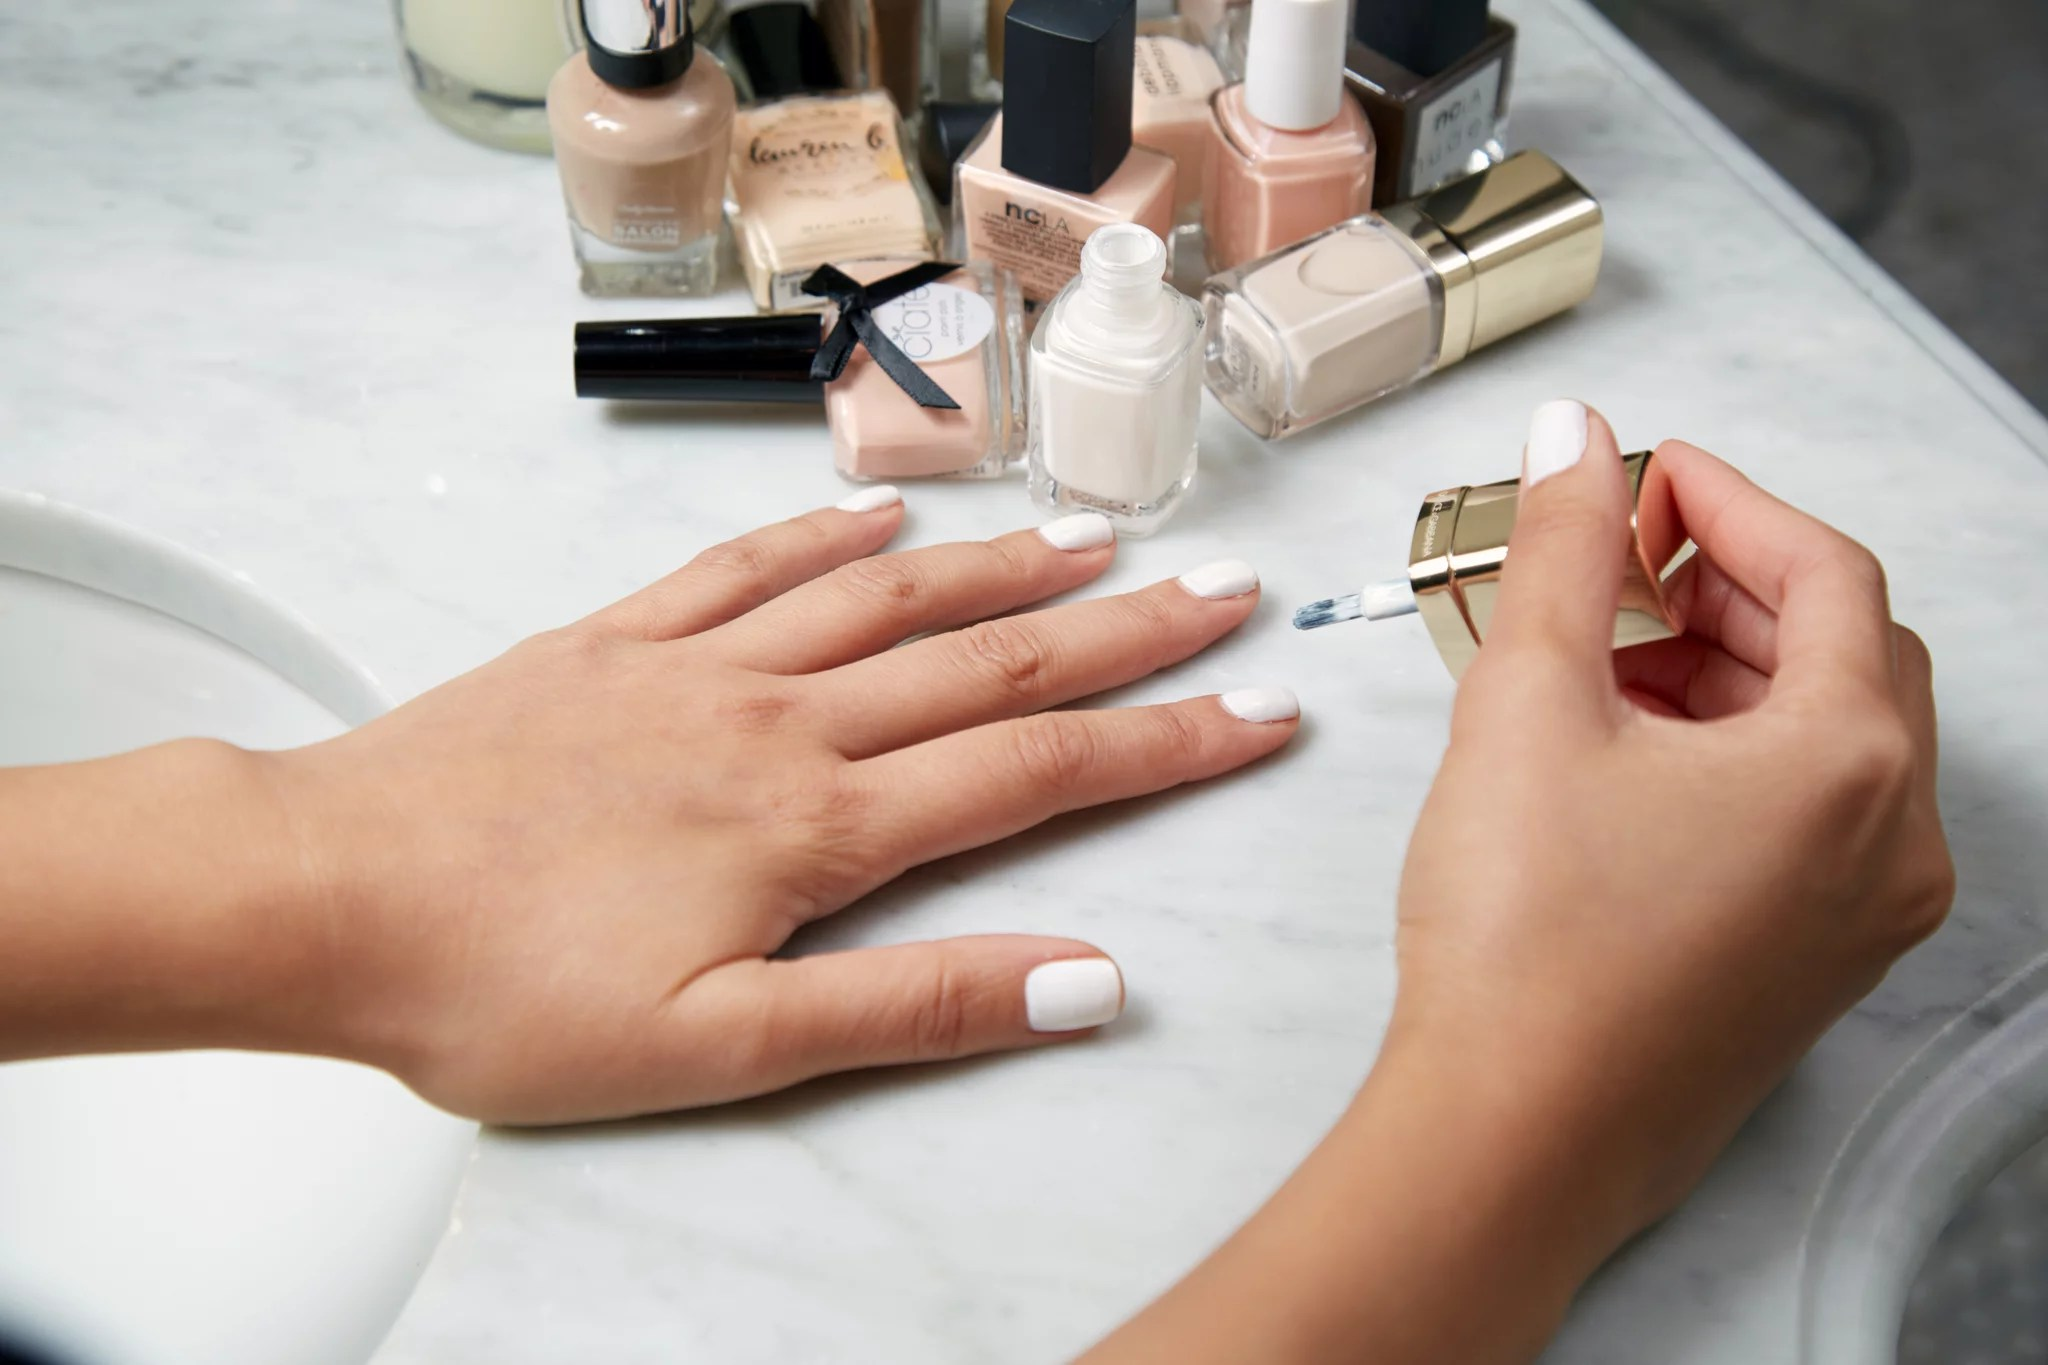 How To Clean Shellac Nails